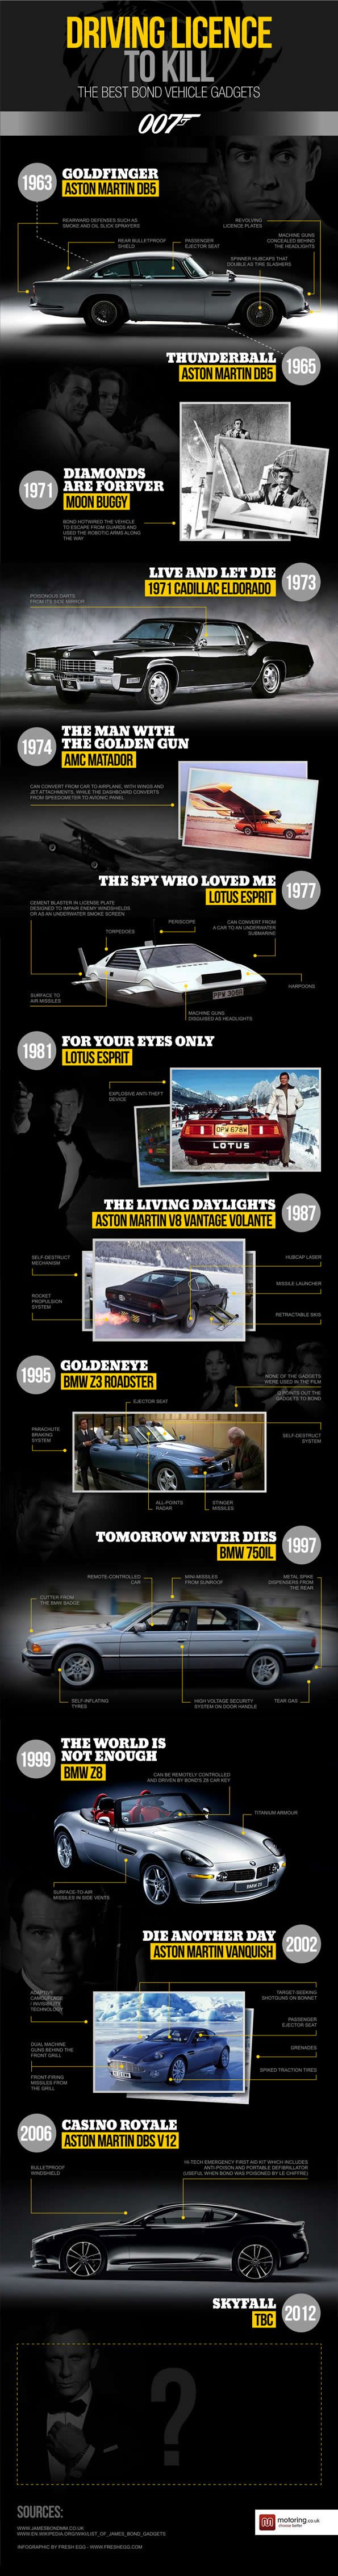 James Bond: Driving Licence to Kill Infographic   Fast Car Magazine